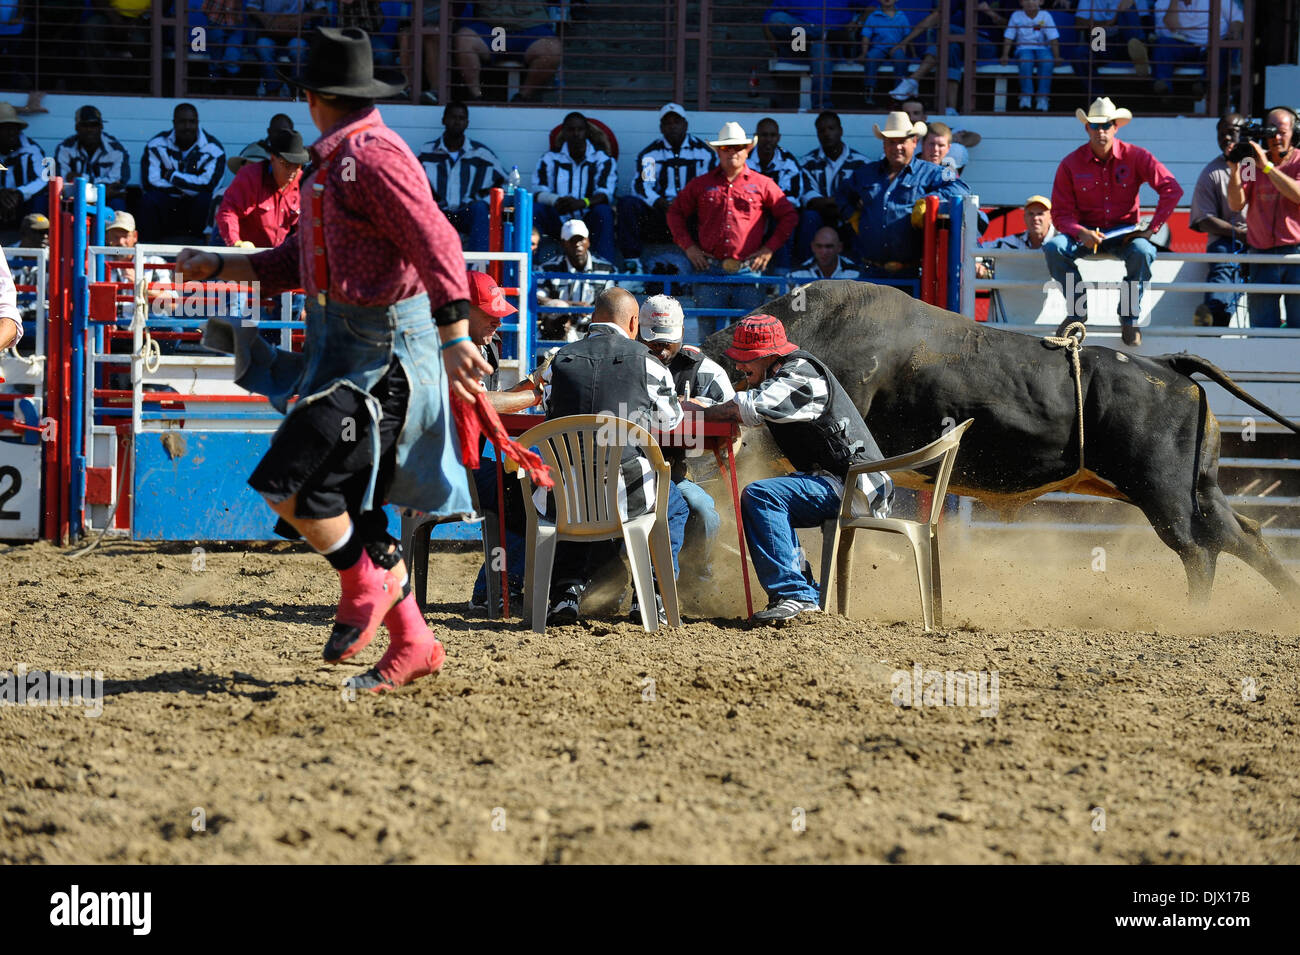 Prison Rodeo Bull Stock Photos Amp Prison Rodeo Bull Stock